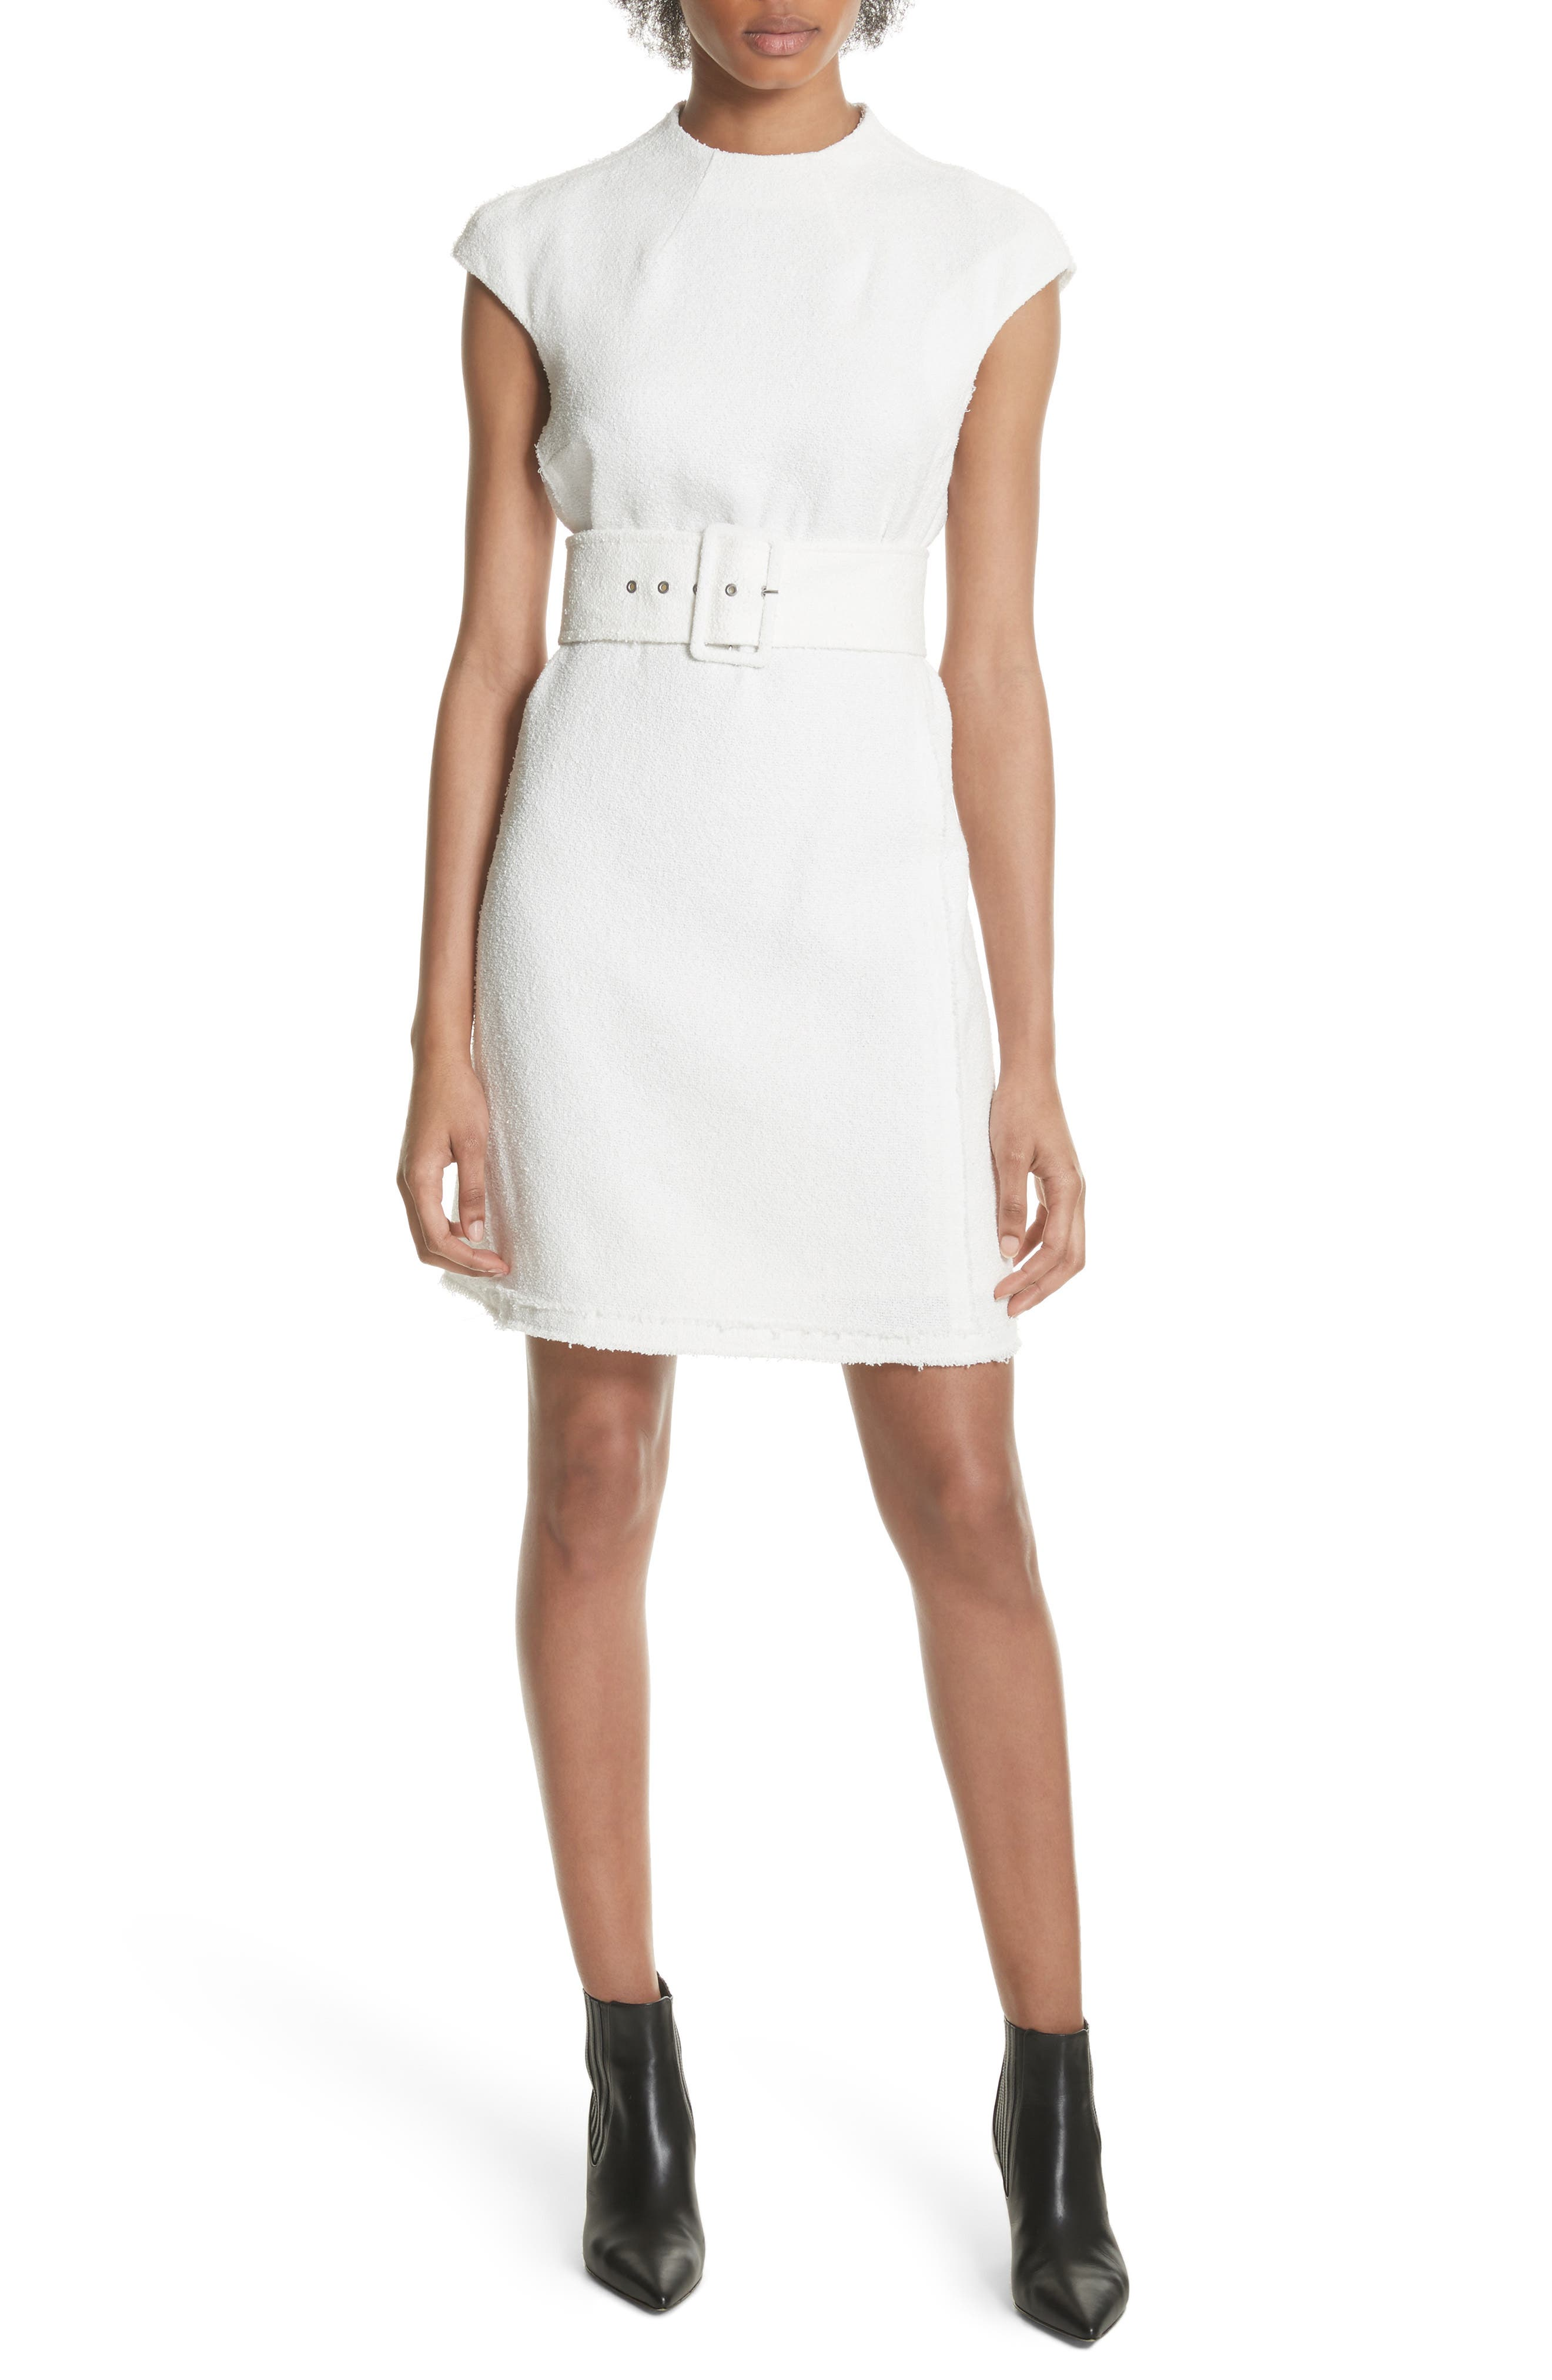 Belted Mod Dress,                             Main thumbnail 1, color,                             Ivory